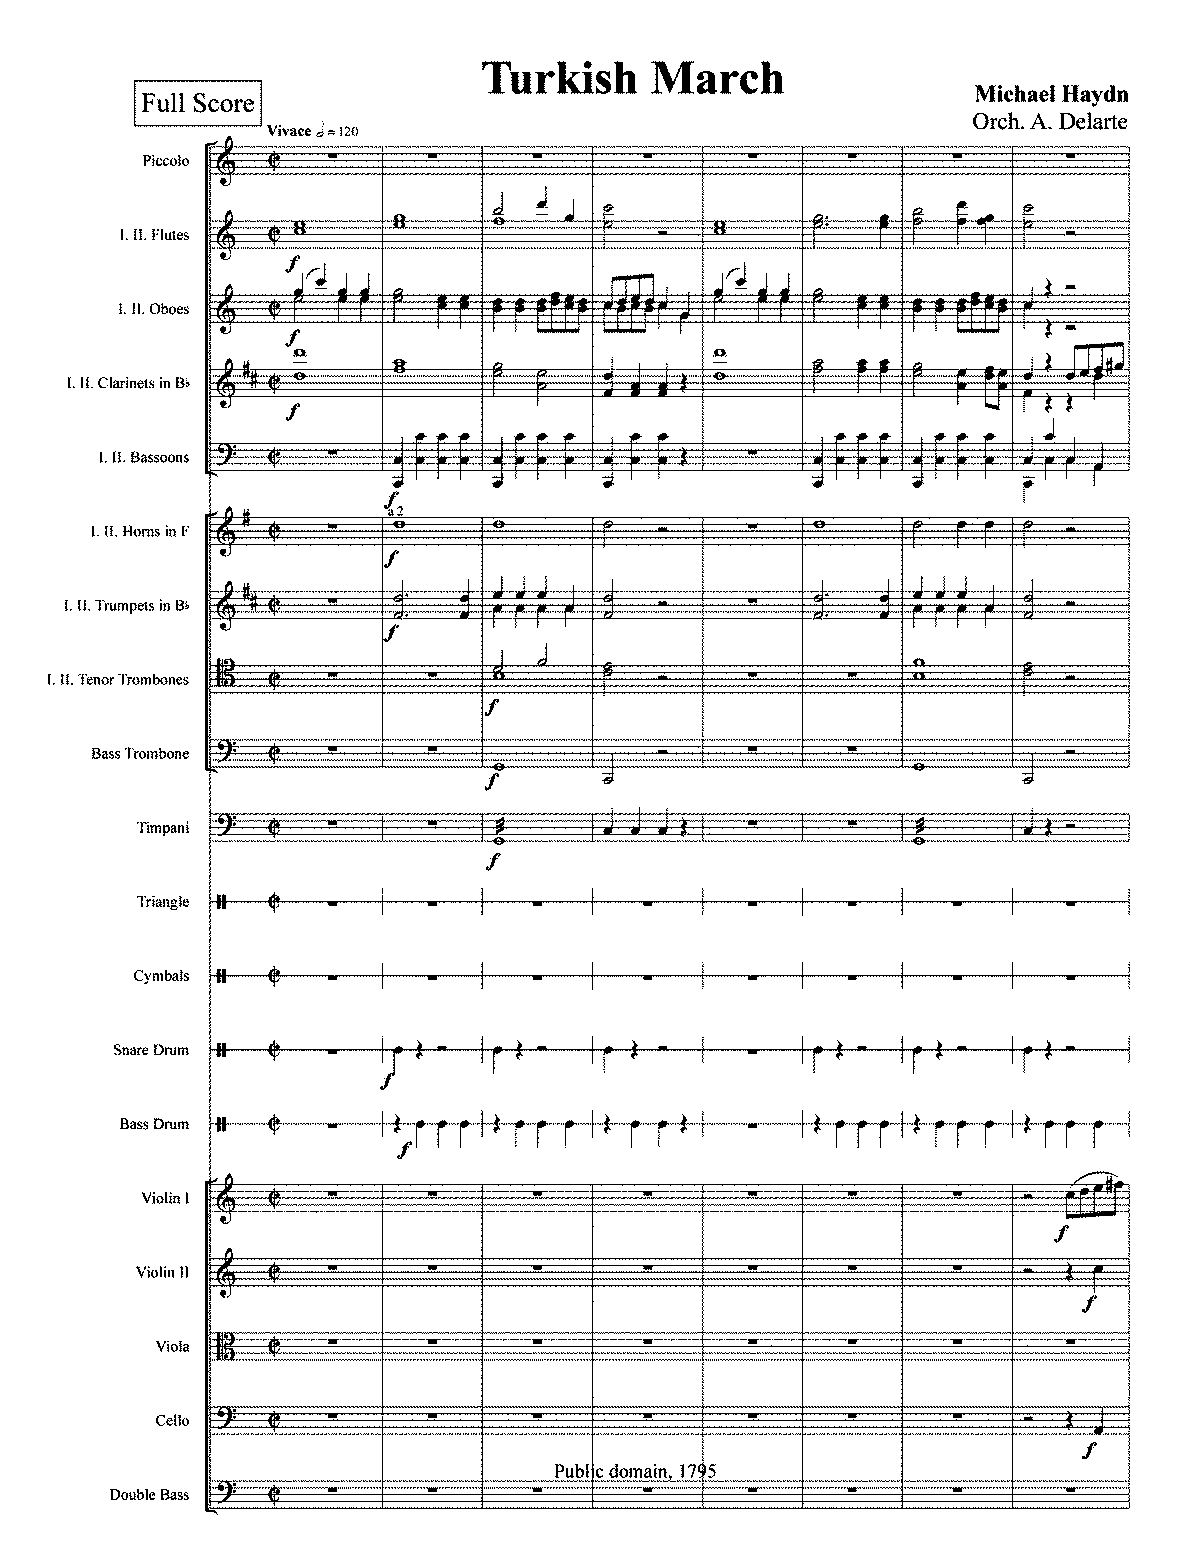 PMLP130783-Turkish March MH Orch woCues.pdf